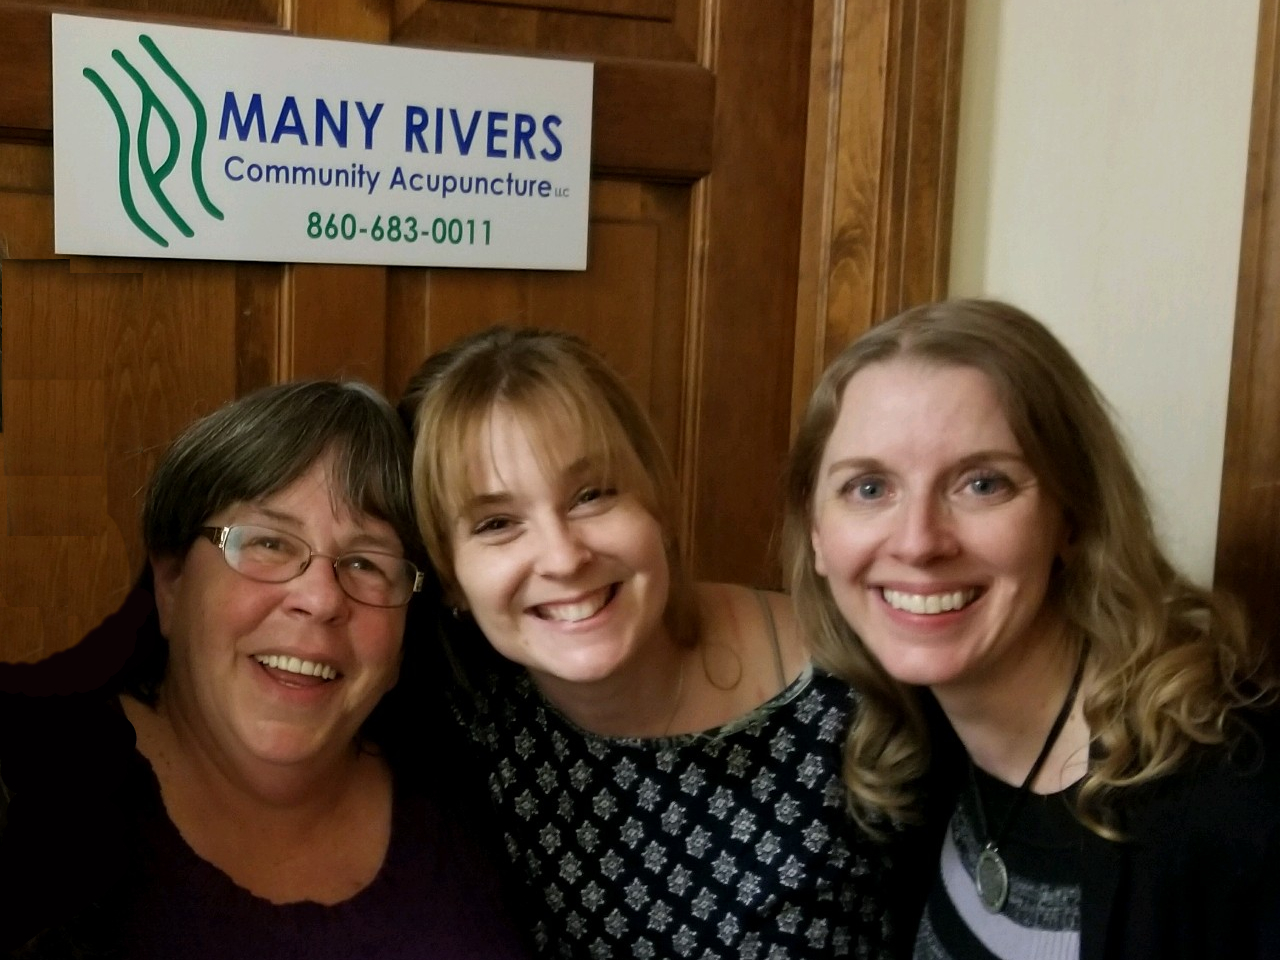 The Many Rivers staff